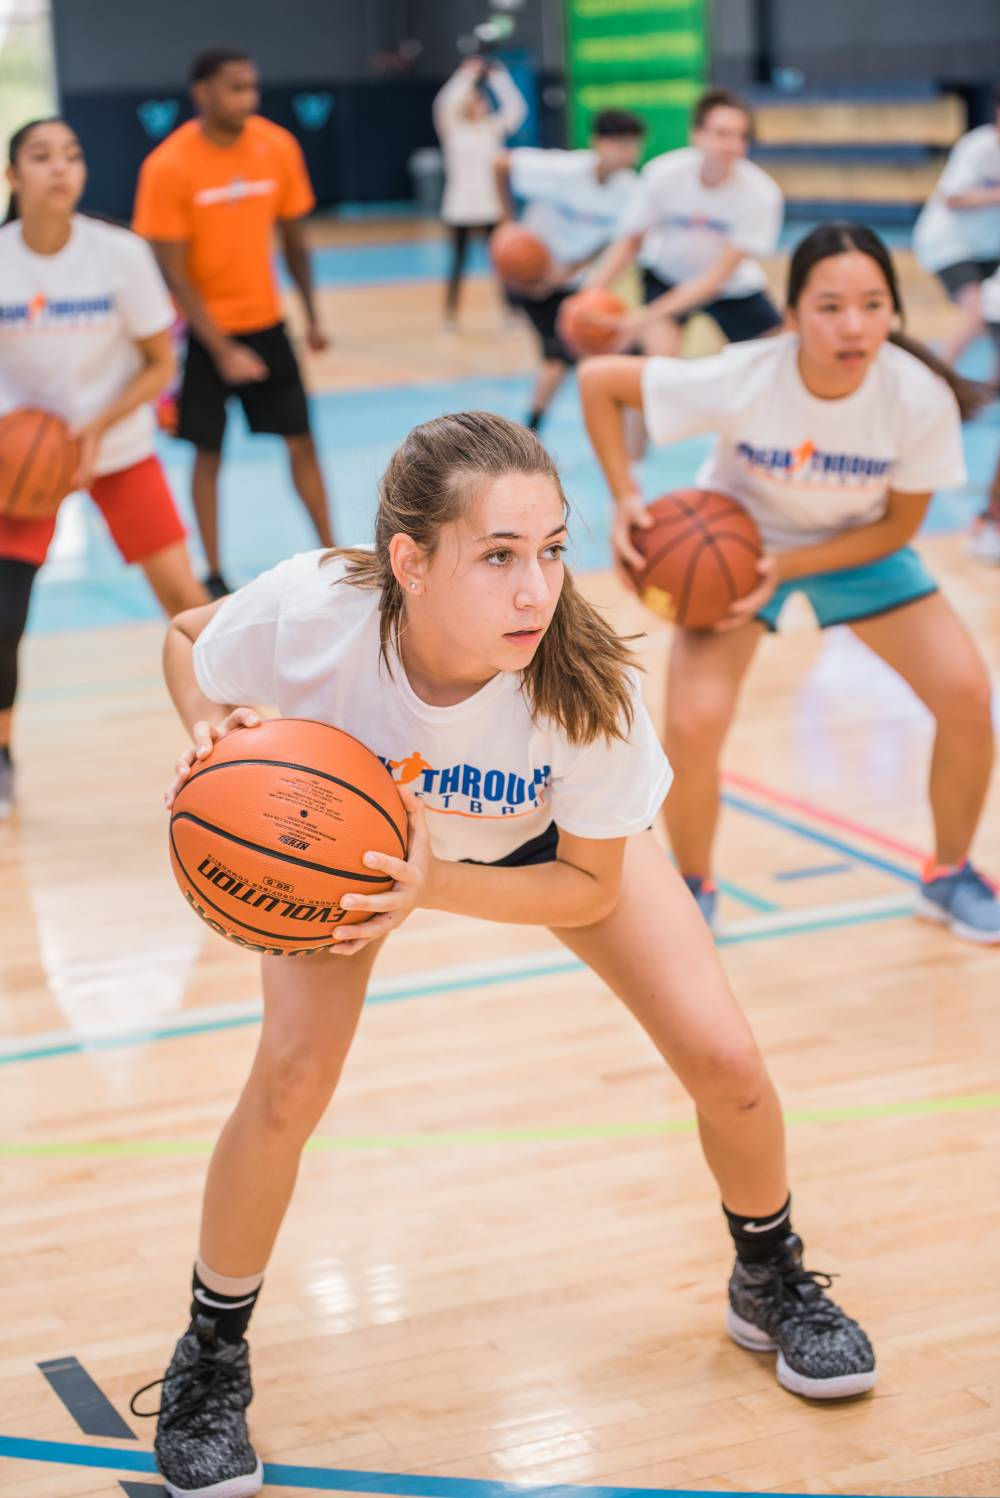 TOP VARIOUS LOCATIONS SUMMER CAMP: Breakthrough Basketball Camps is a Top Summer Camp located in  Various Locations offering many fun and enriching camp programs.